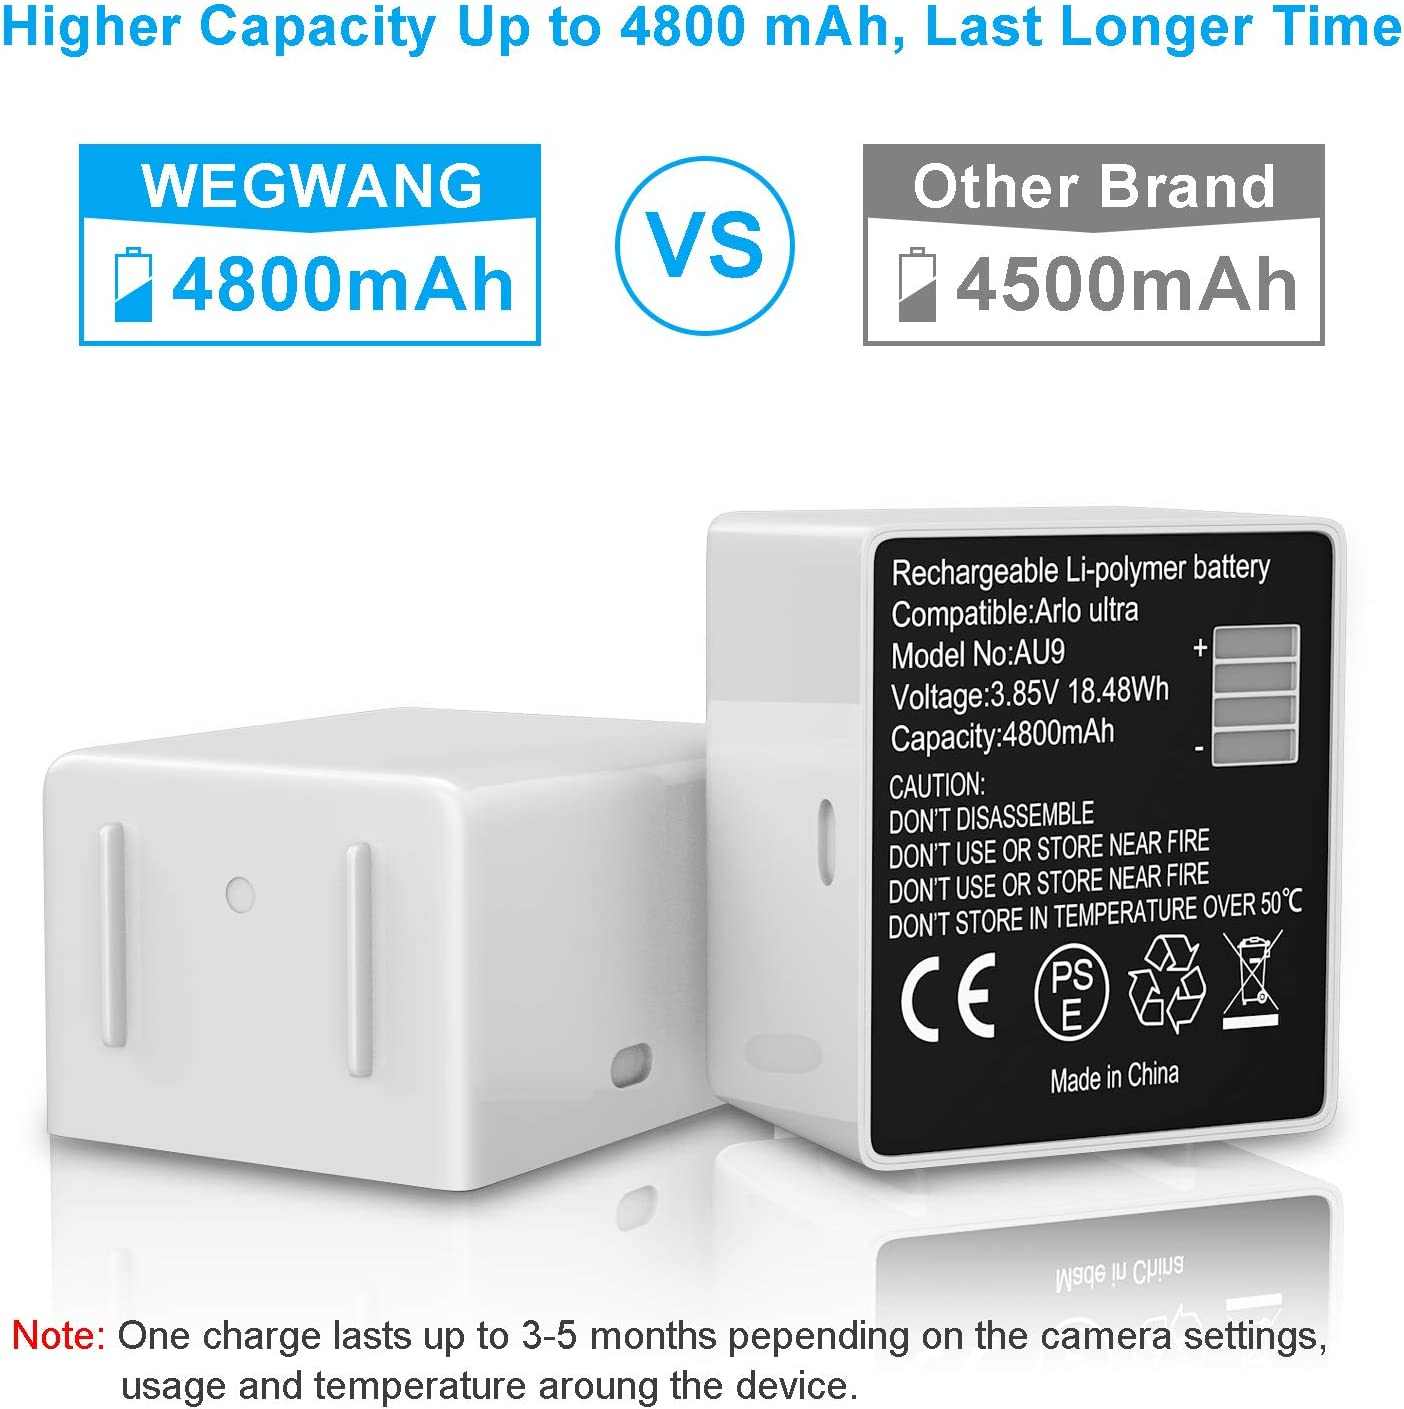 NOT Compatible with Arlo Pro Rechargeable Batteries Compatible with Arlo Pro 3 Arlo Ultra | WEGWANG Rechargeable 4800mAh Lithium Ion Battery Suitable for Ultra//Pro 3 VMA5400 /& VMA5400C Arlo Pro 2